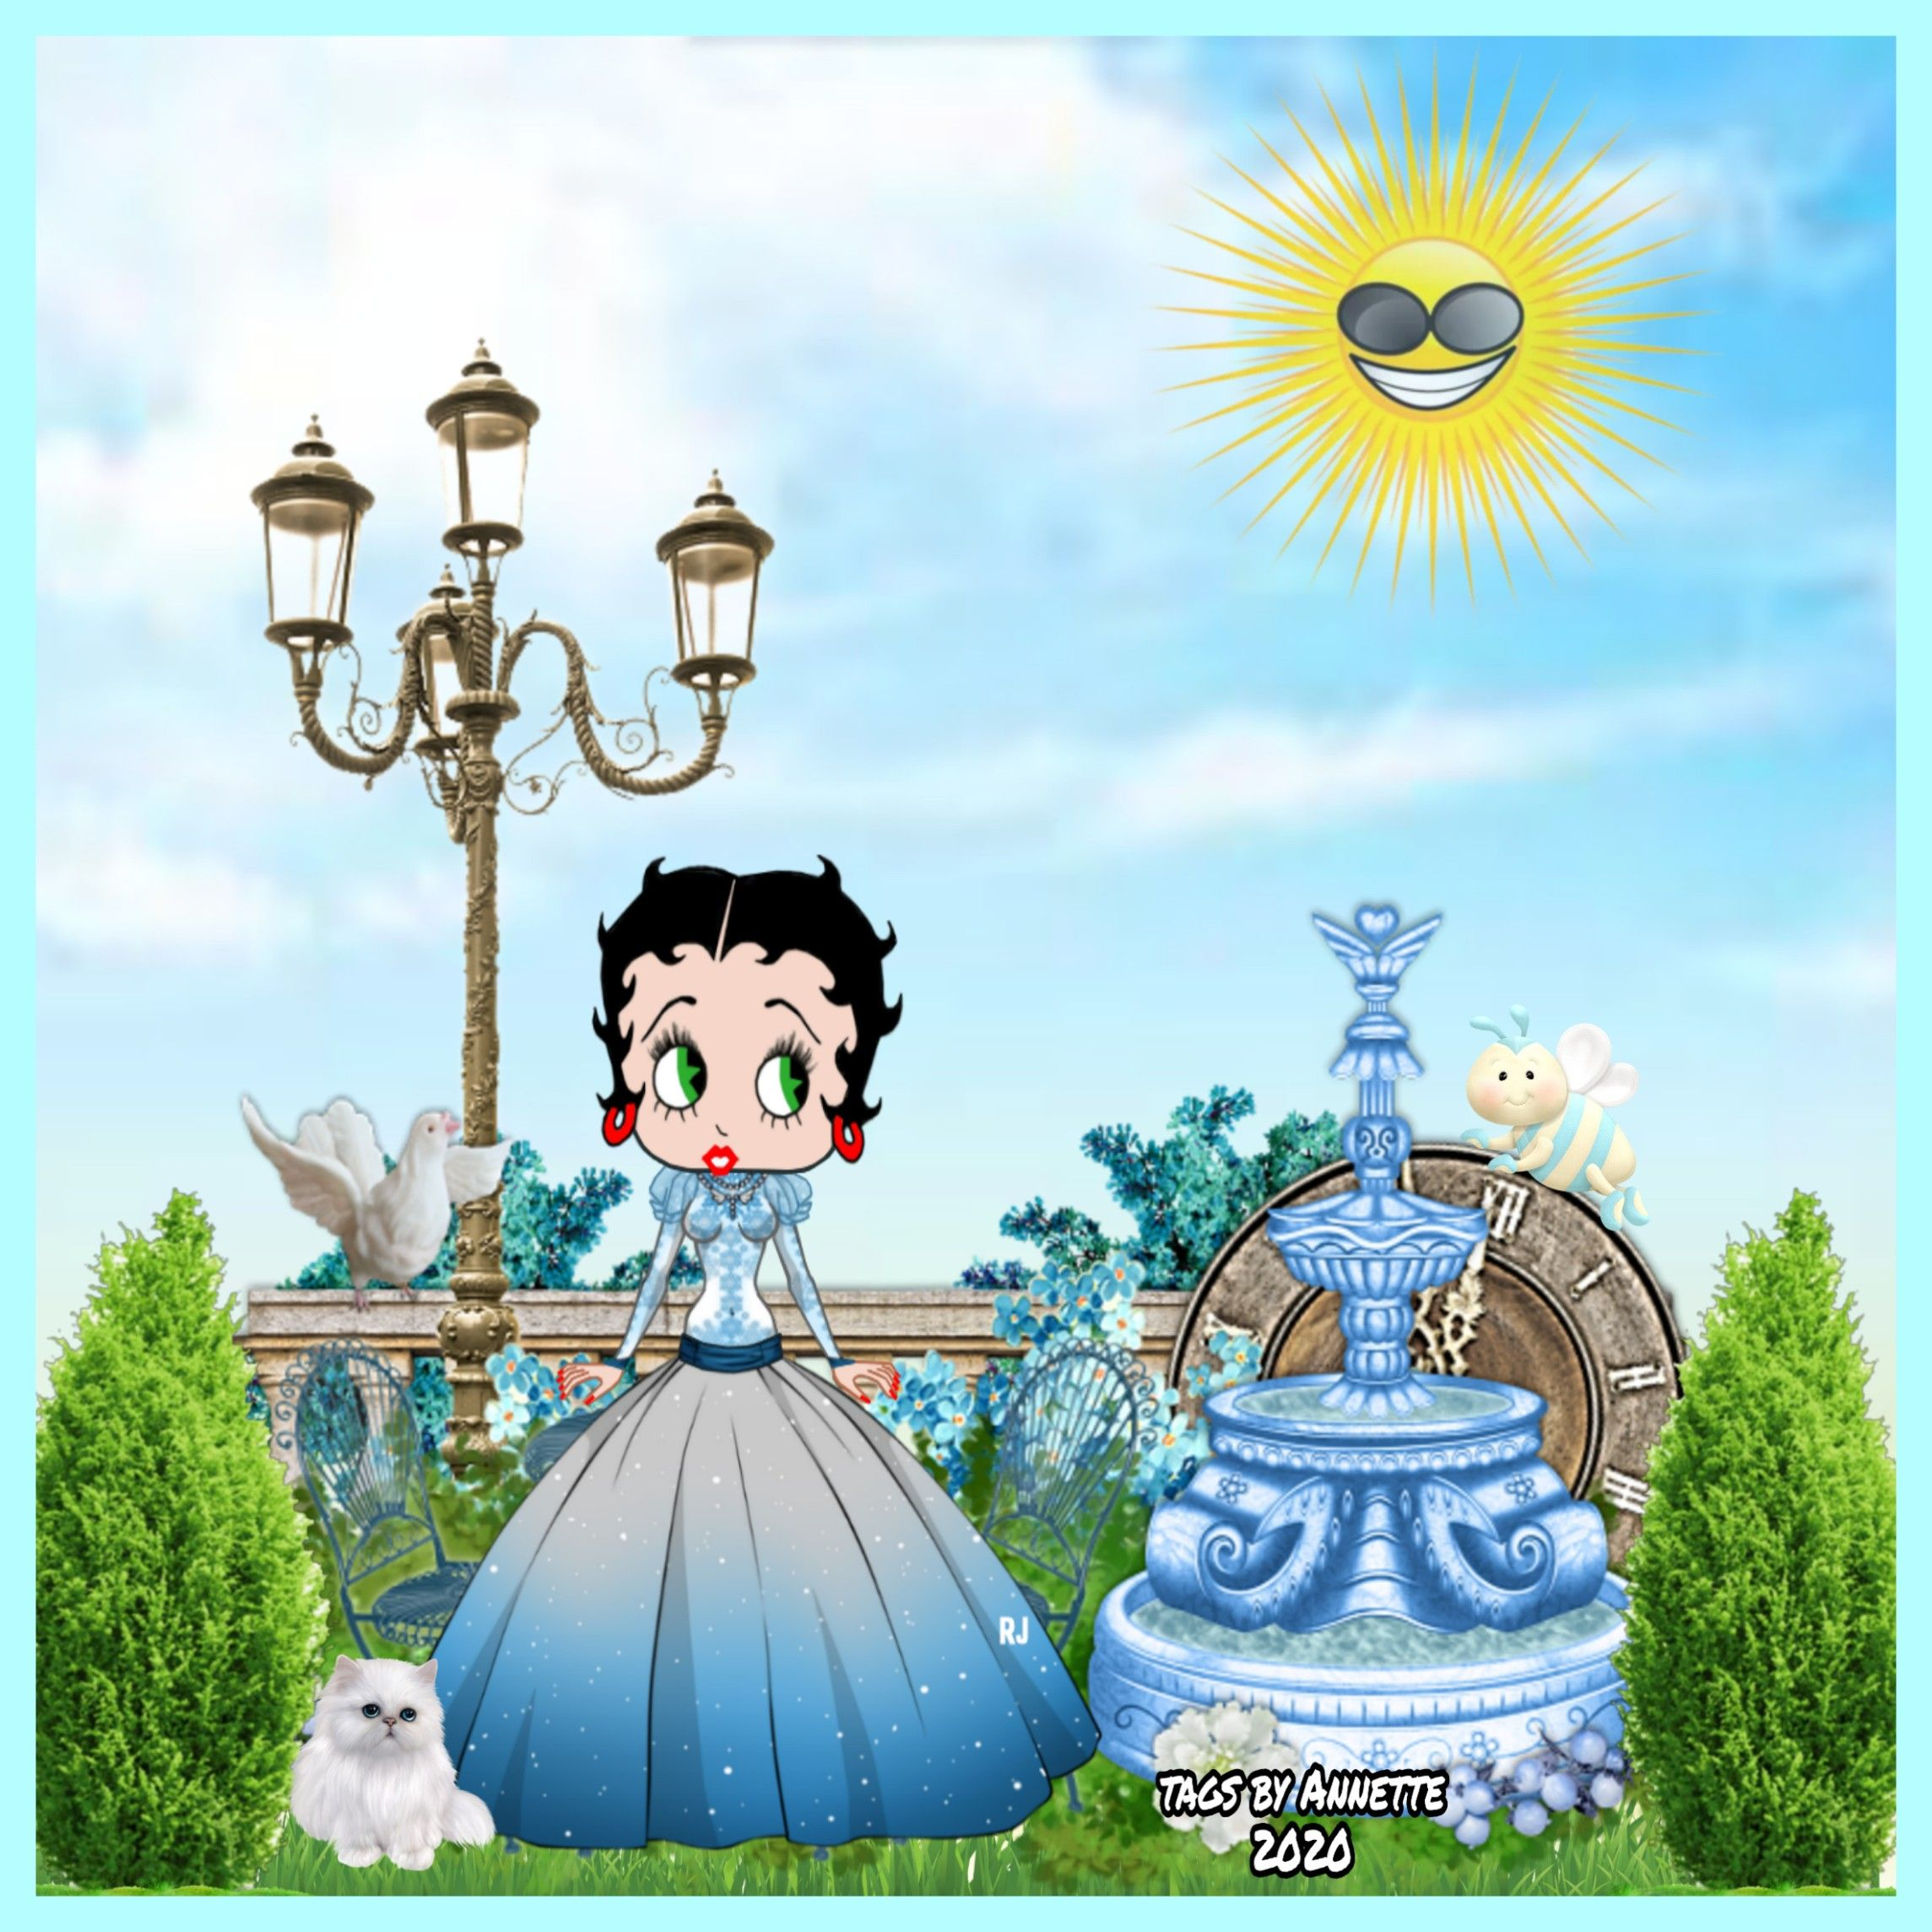 Pin By Annette Lutynski On Spring/Easter Betty Boop 2020